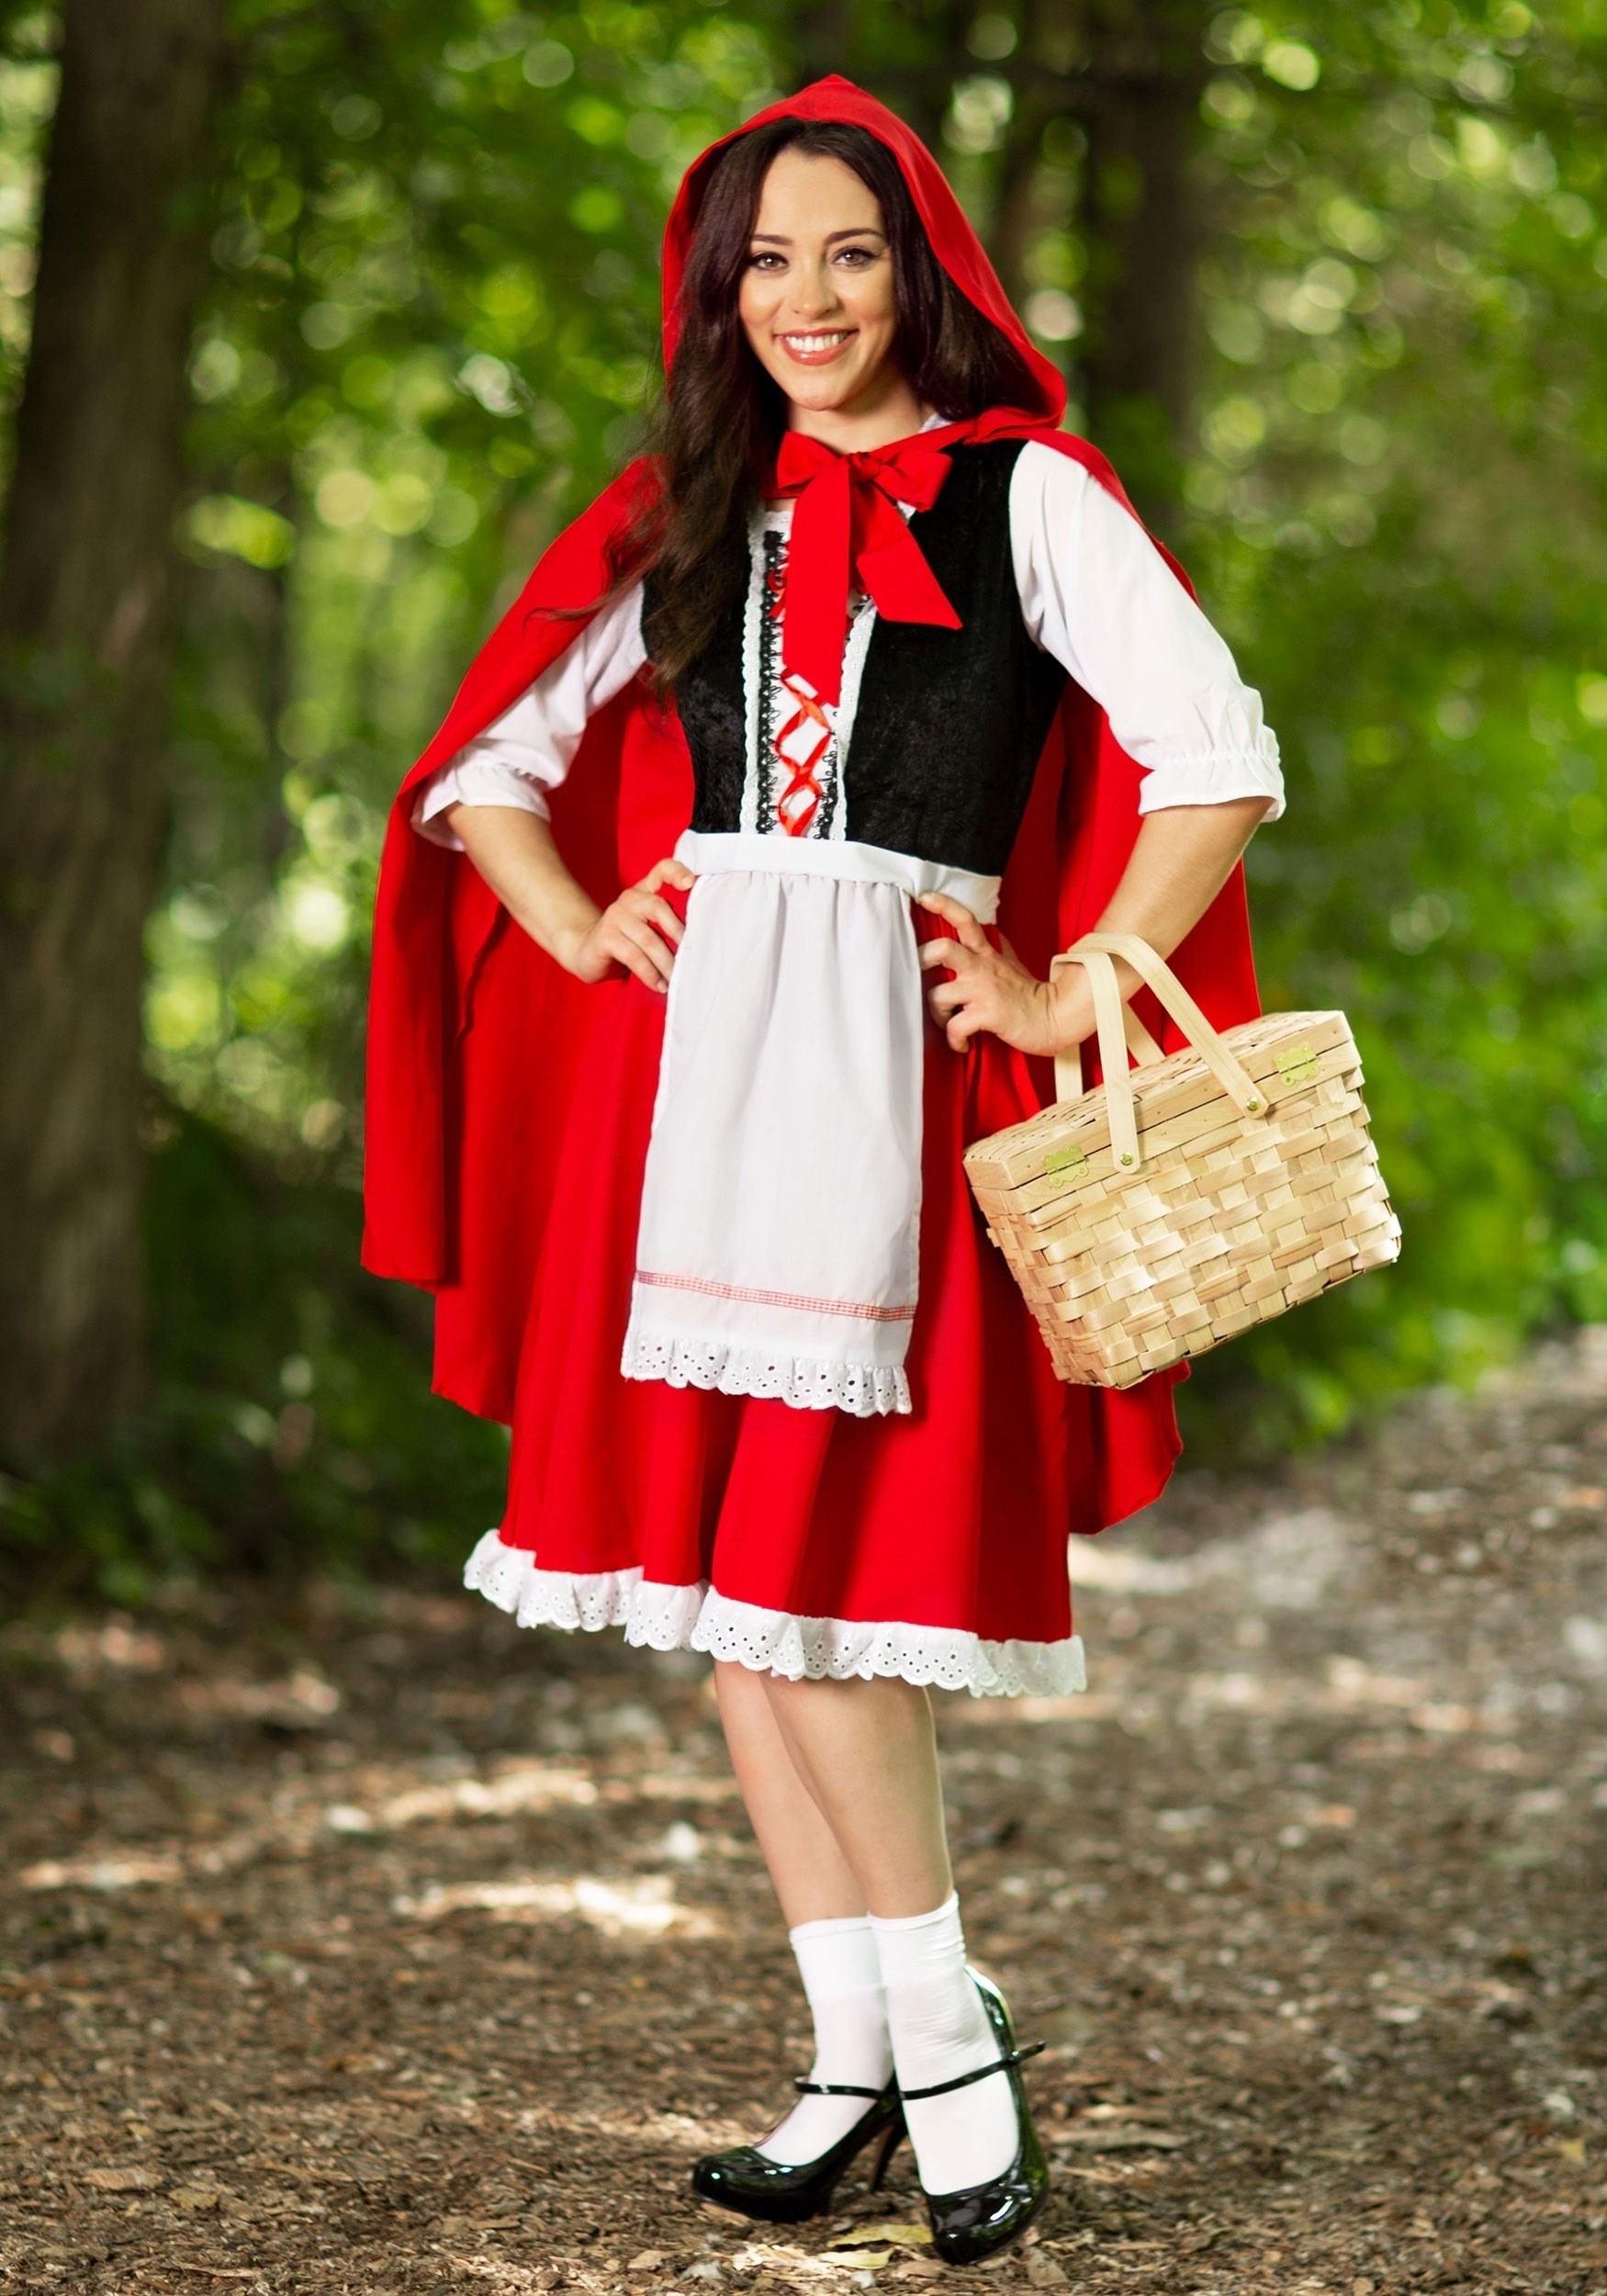 Halloween outdoor decorations pinterest - Plus Size Little Red Riding Hood Costume